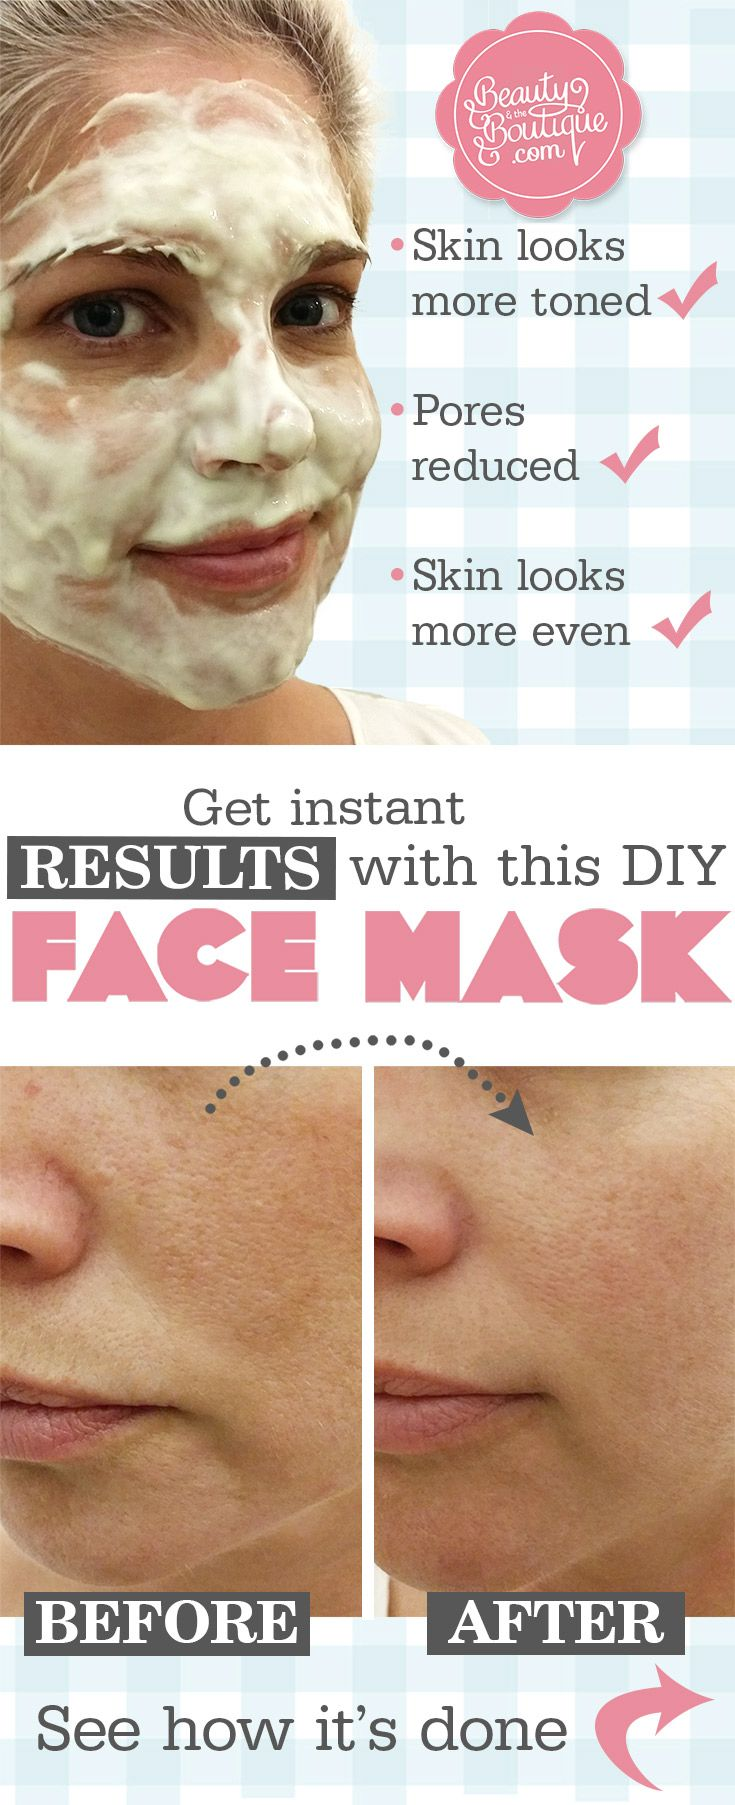 If You've Never Tried Making A Face Mask At Home Before, Now's The